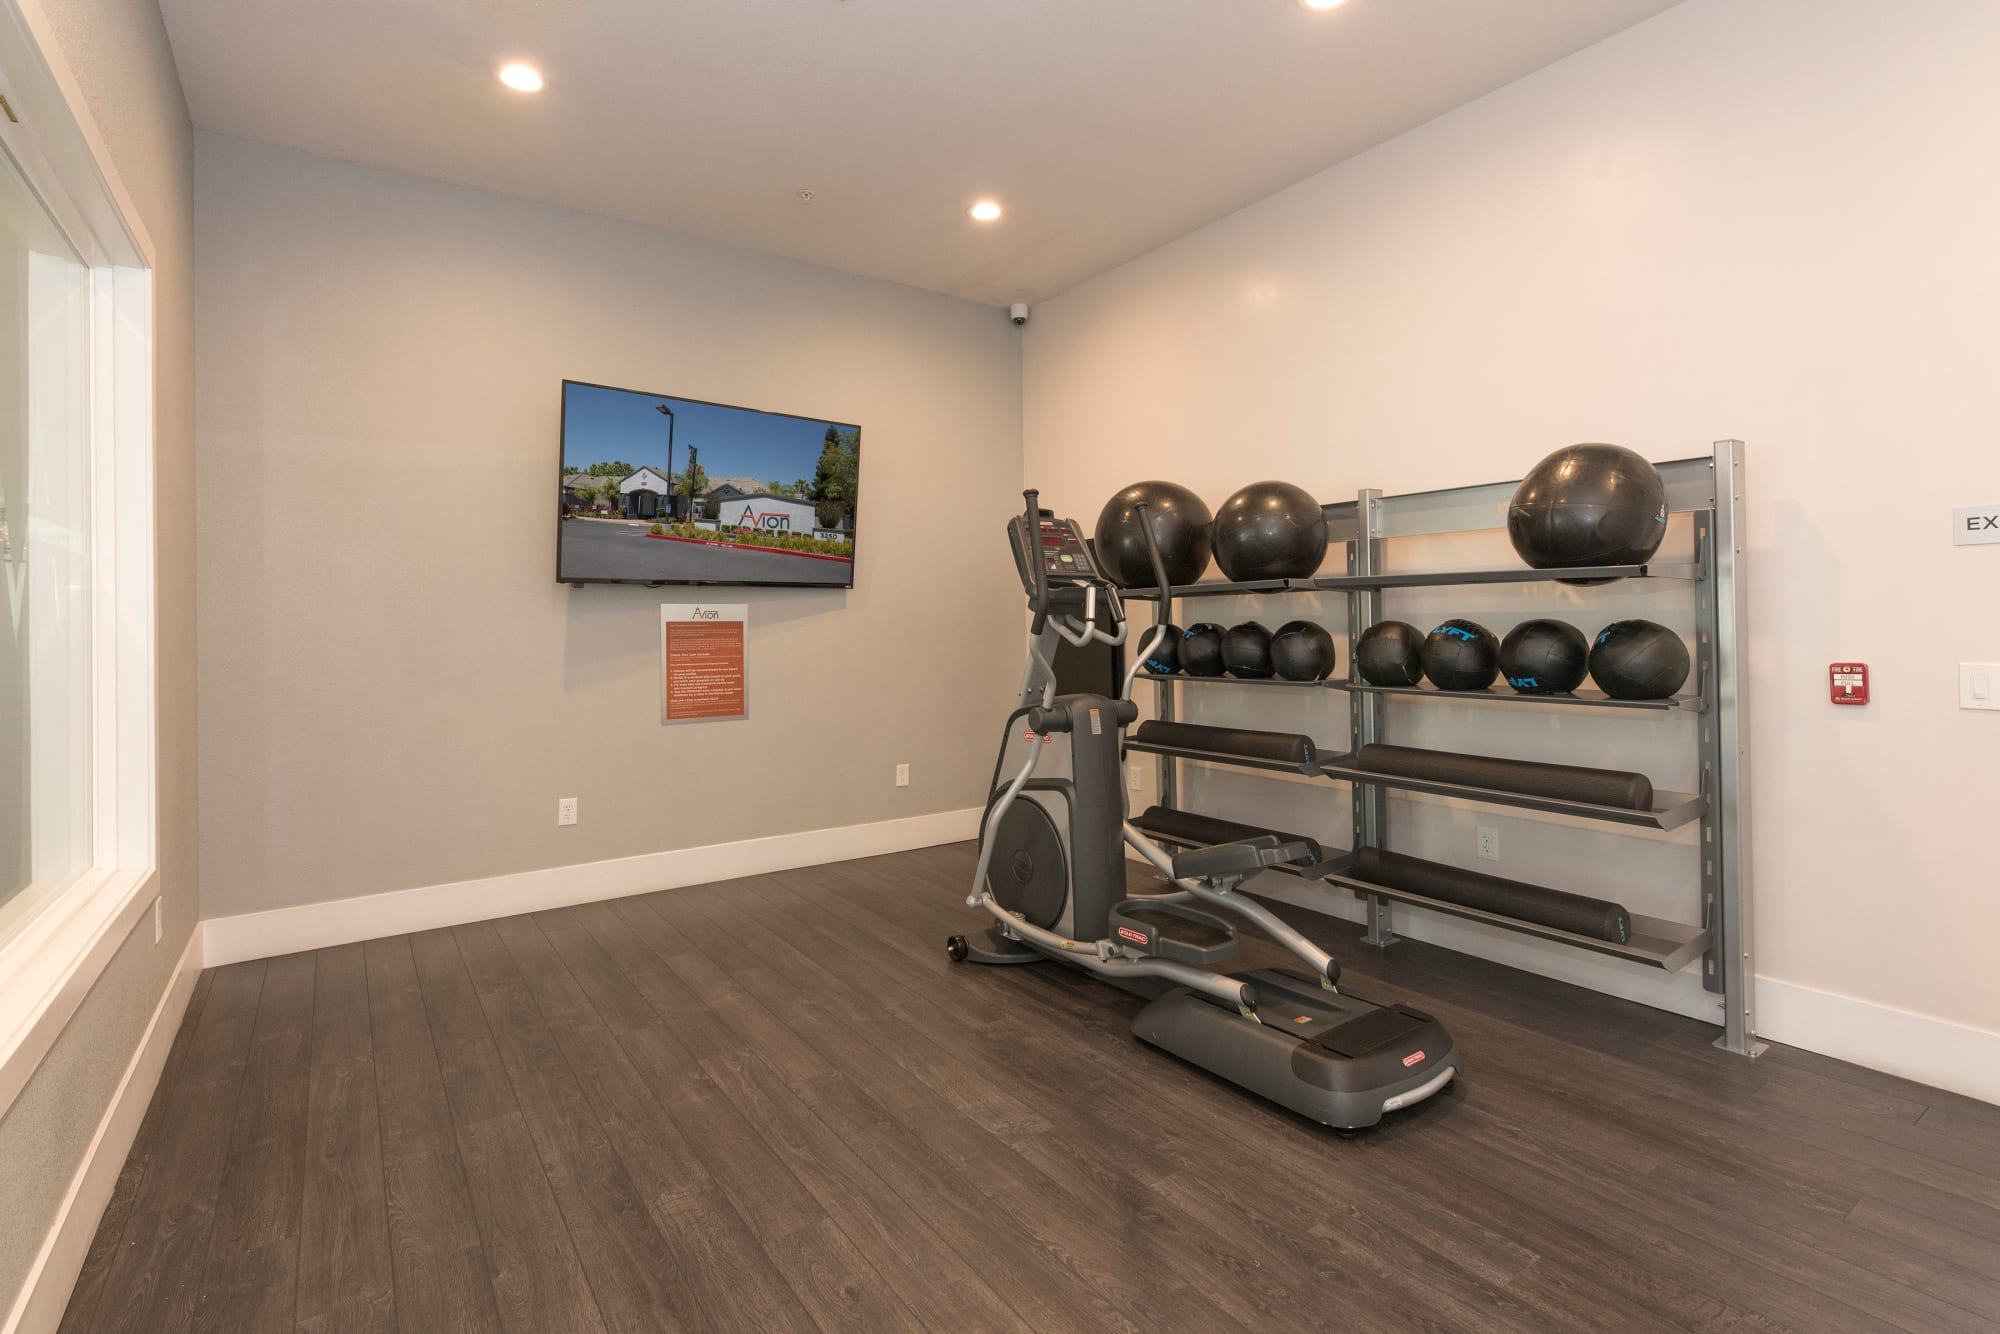 Weights in the fitness center at Avion Apartments in Rancho Cordova, California